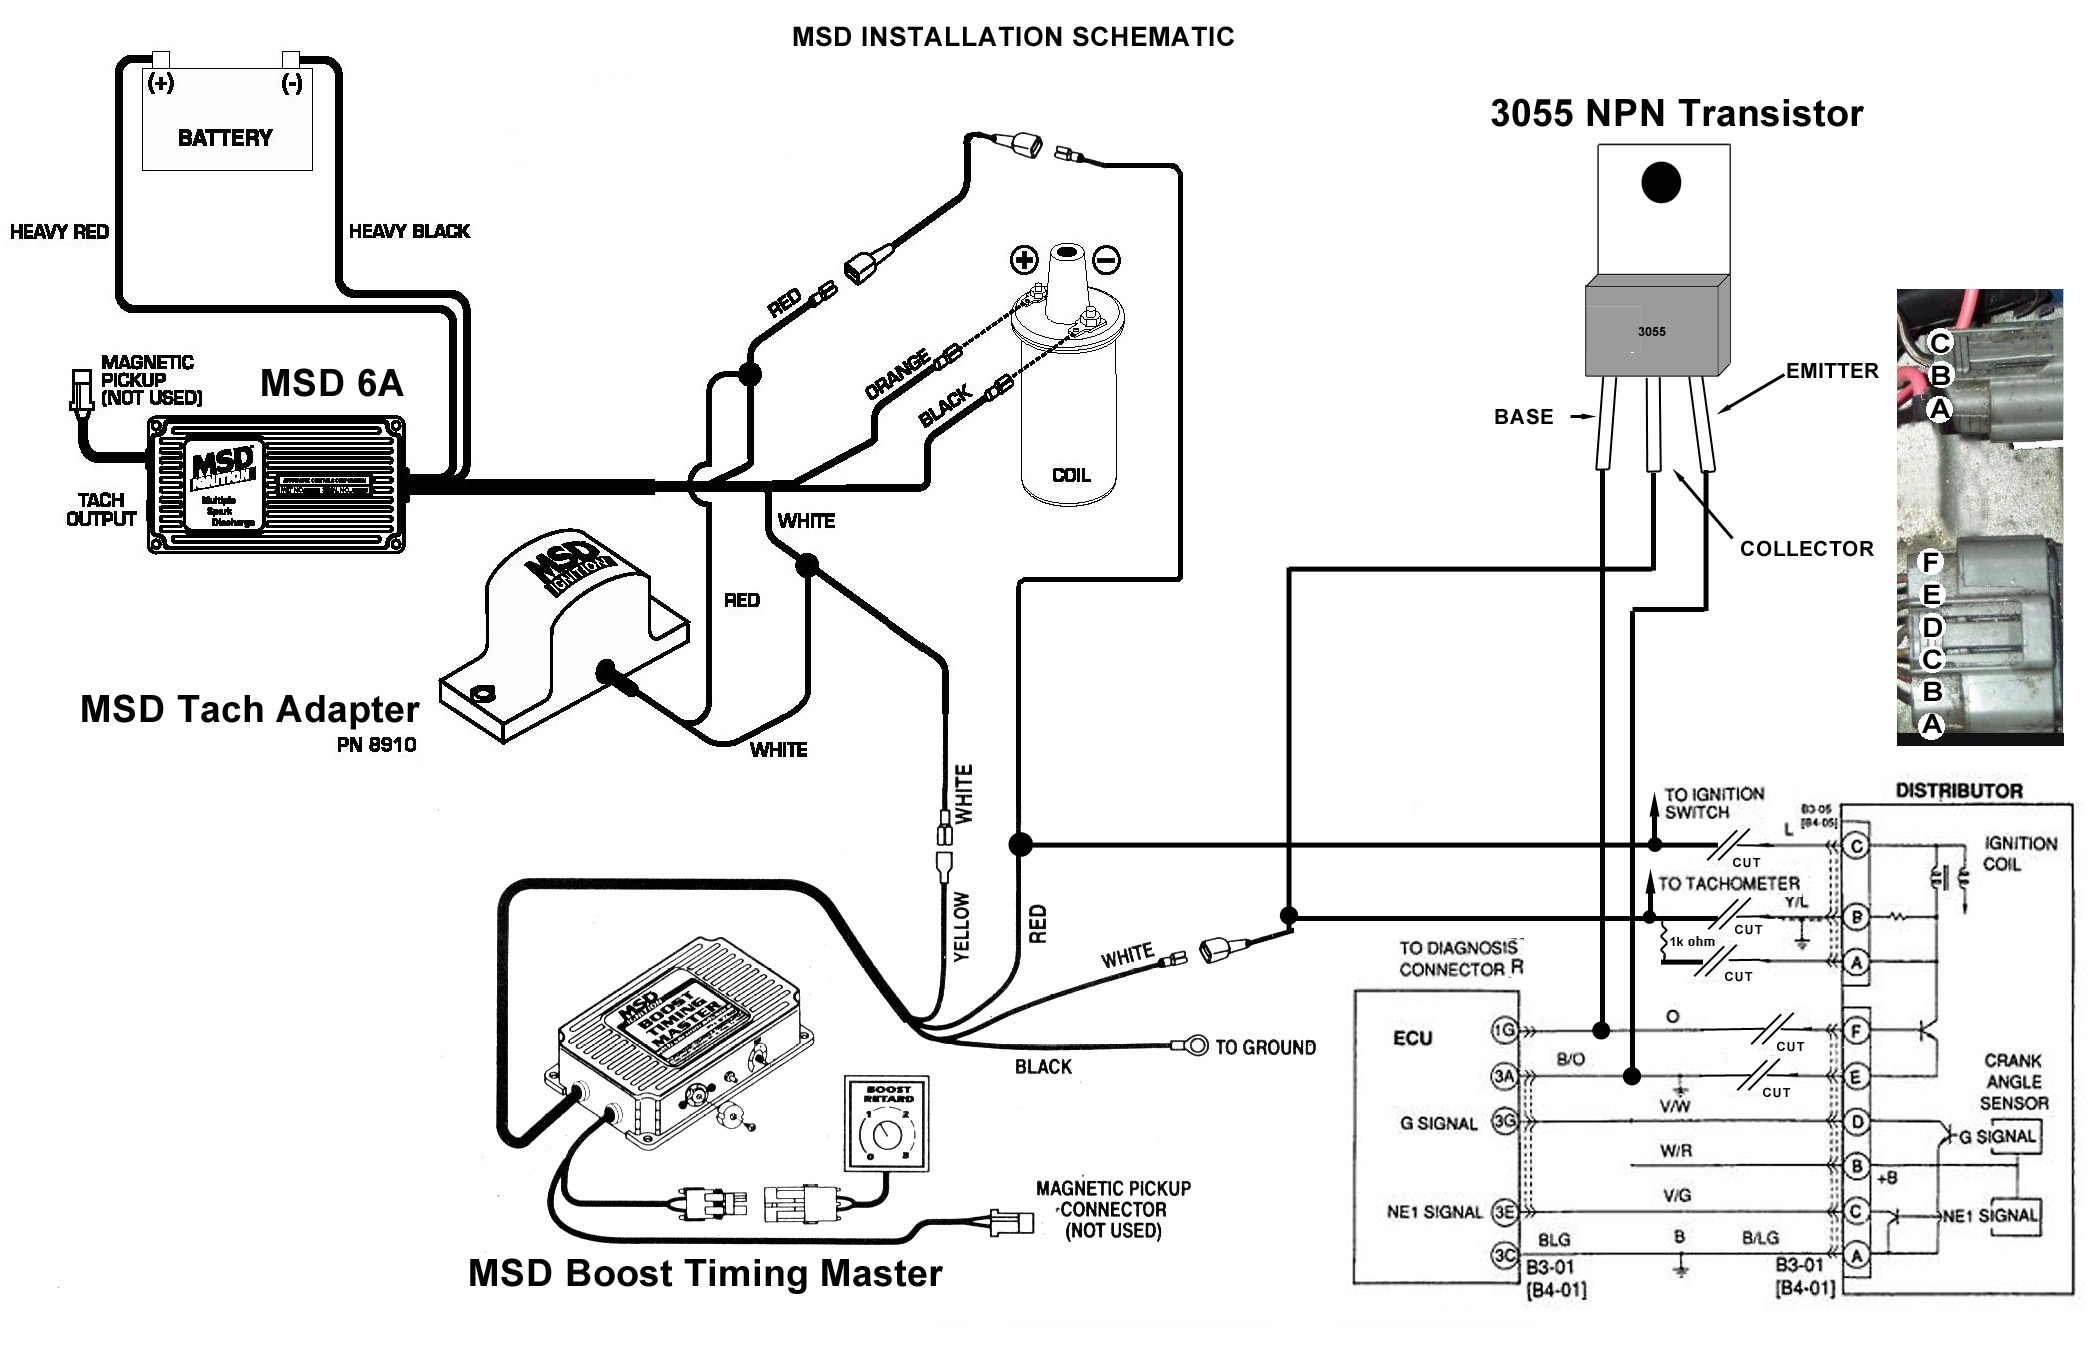 msd ignition diagram